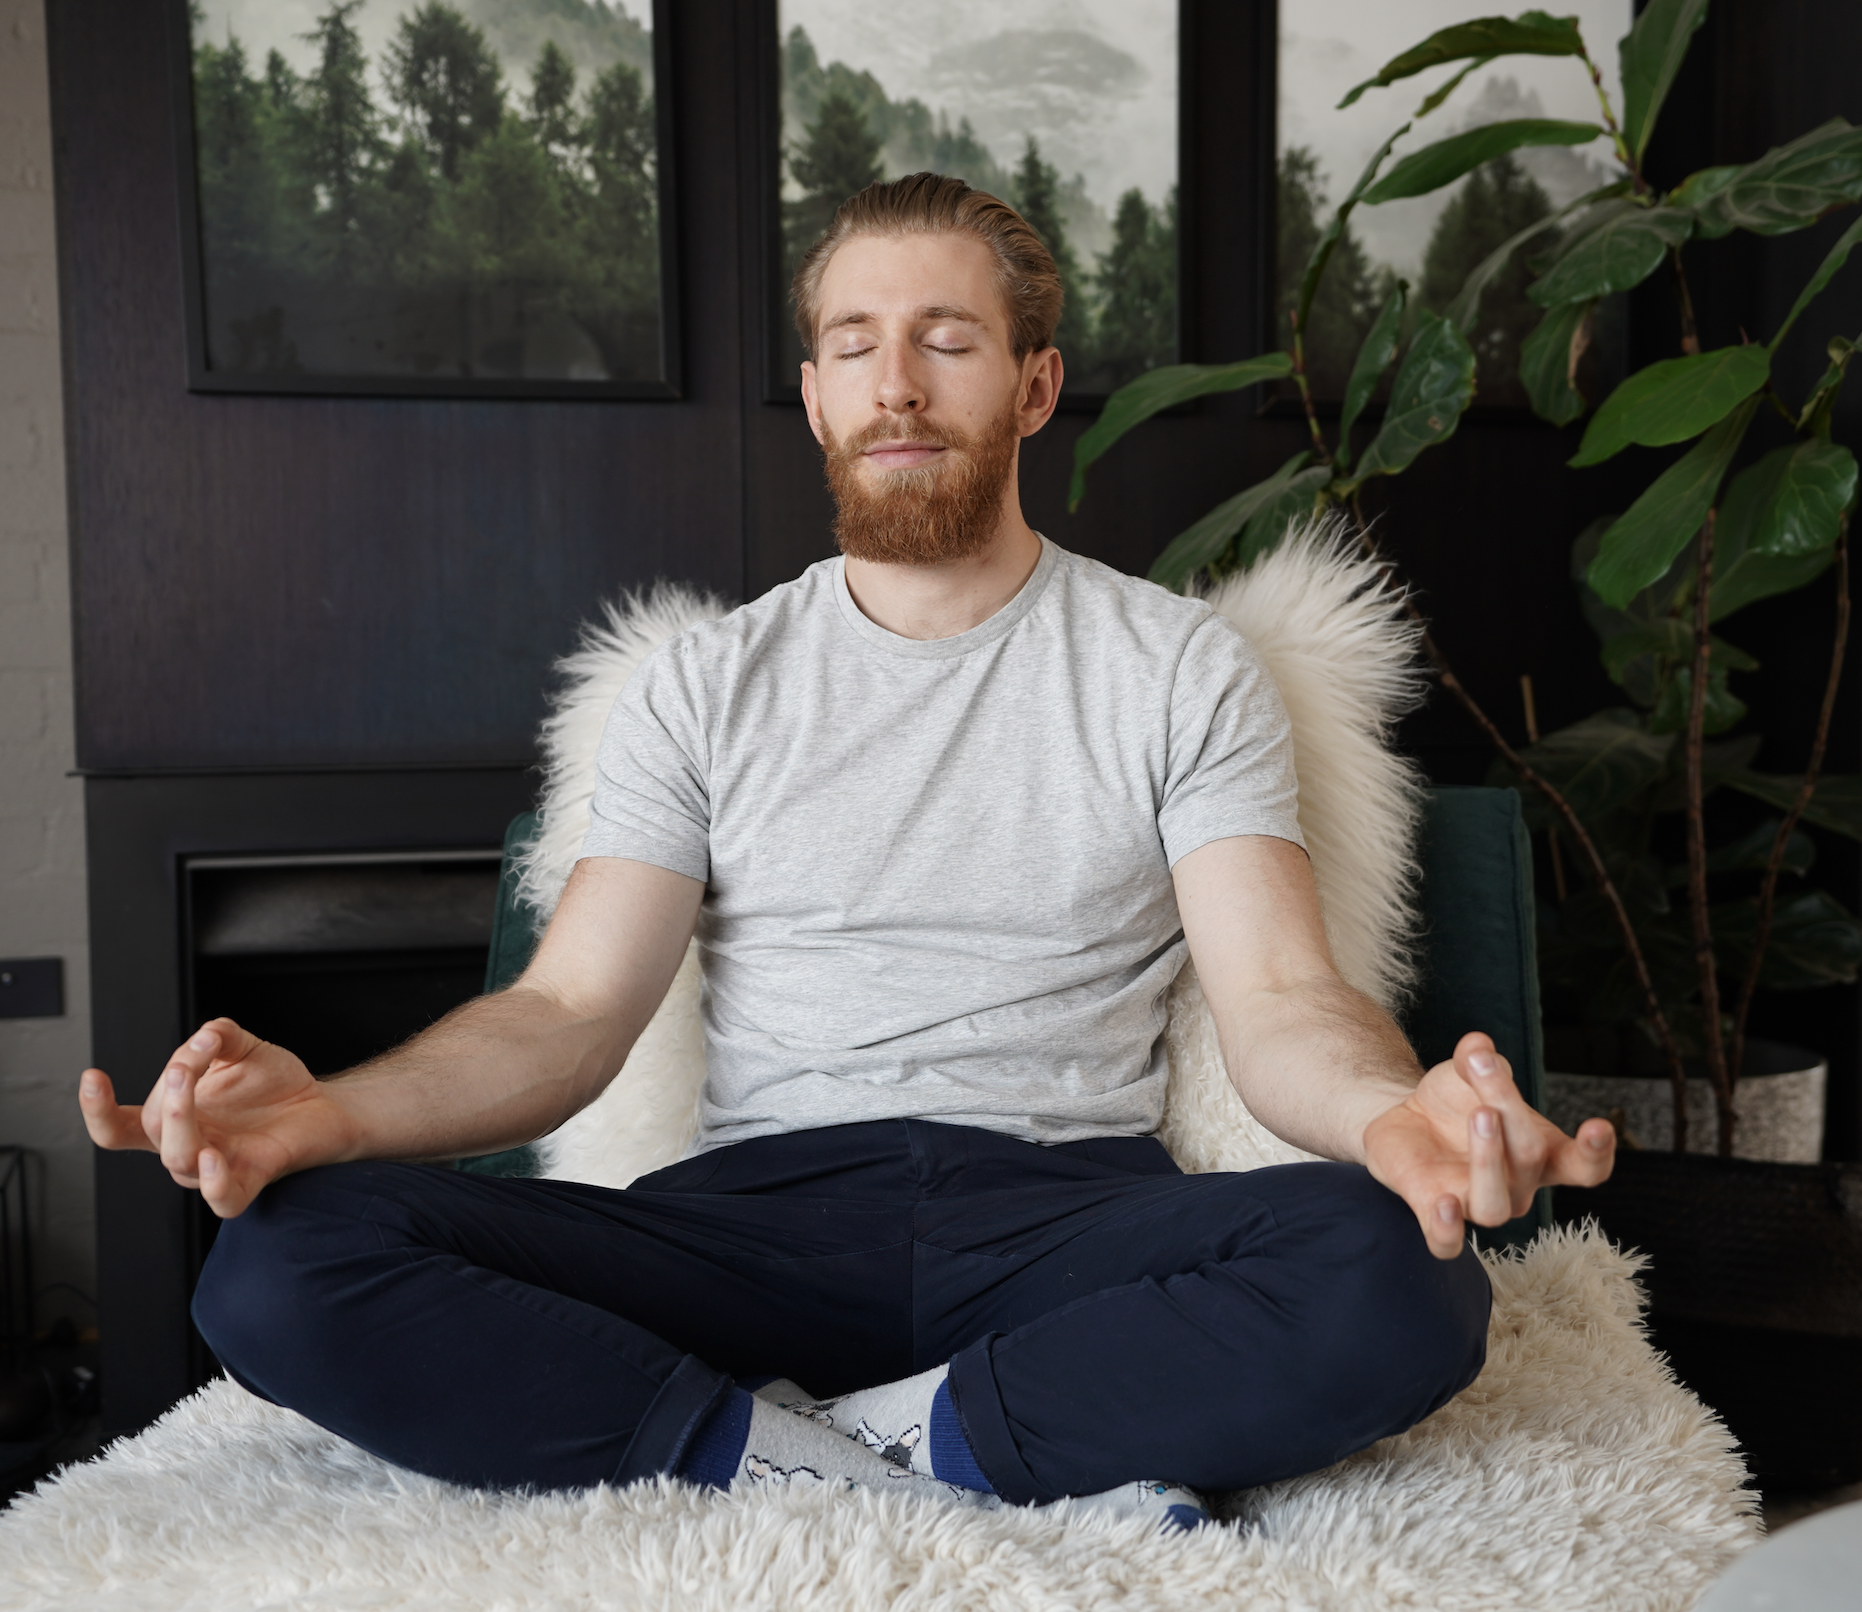 Meditating on couch